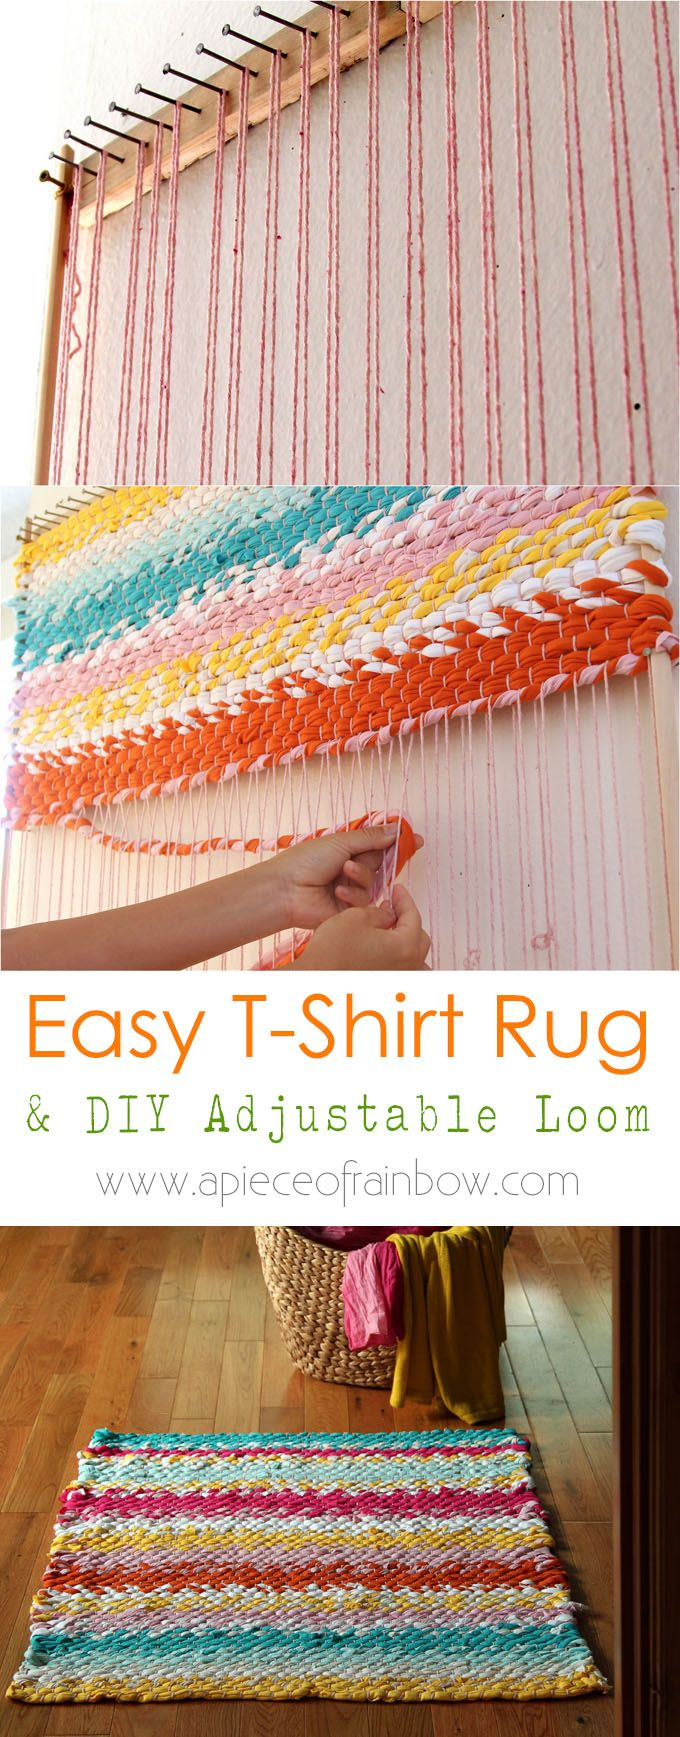 Weave A T Shirt Rug With Easy DIY Loom